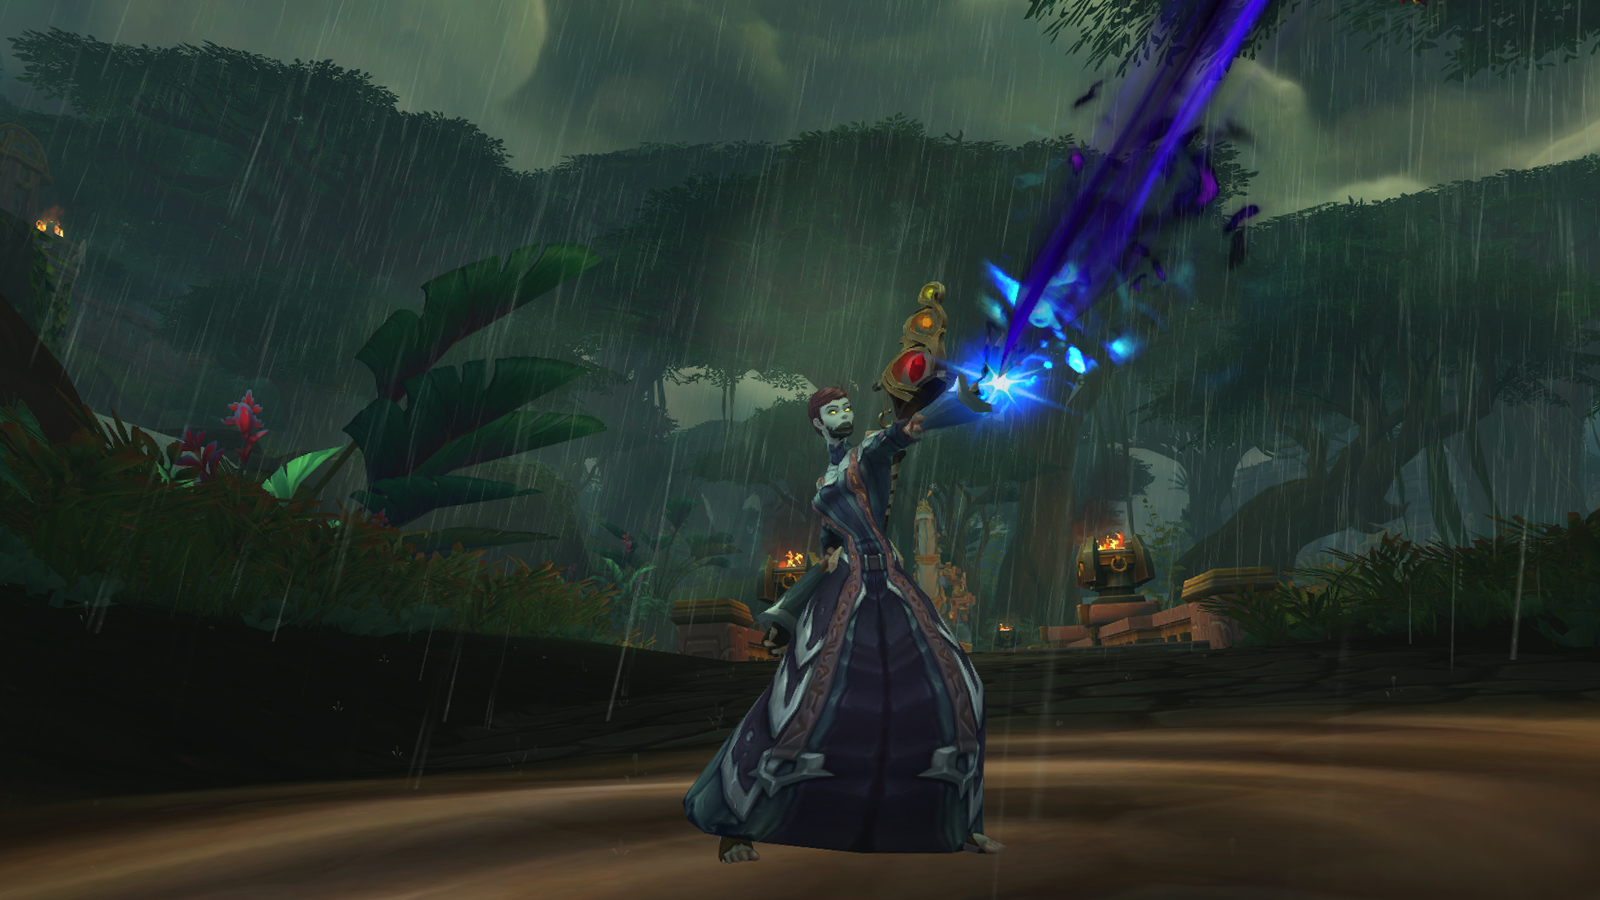 An Undead Mage in WoW casting a spell in Zandalar